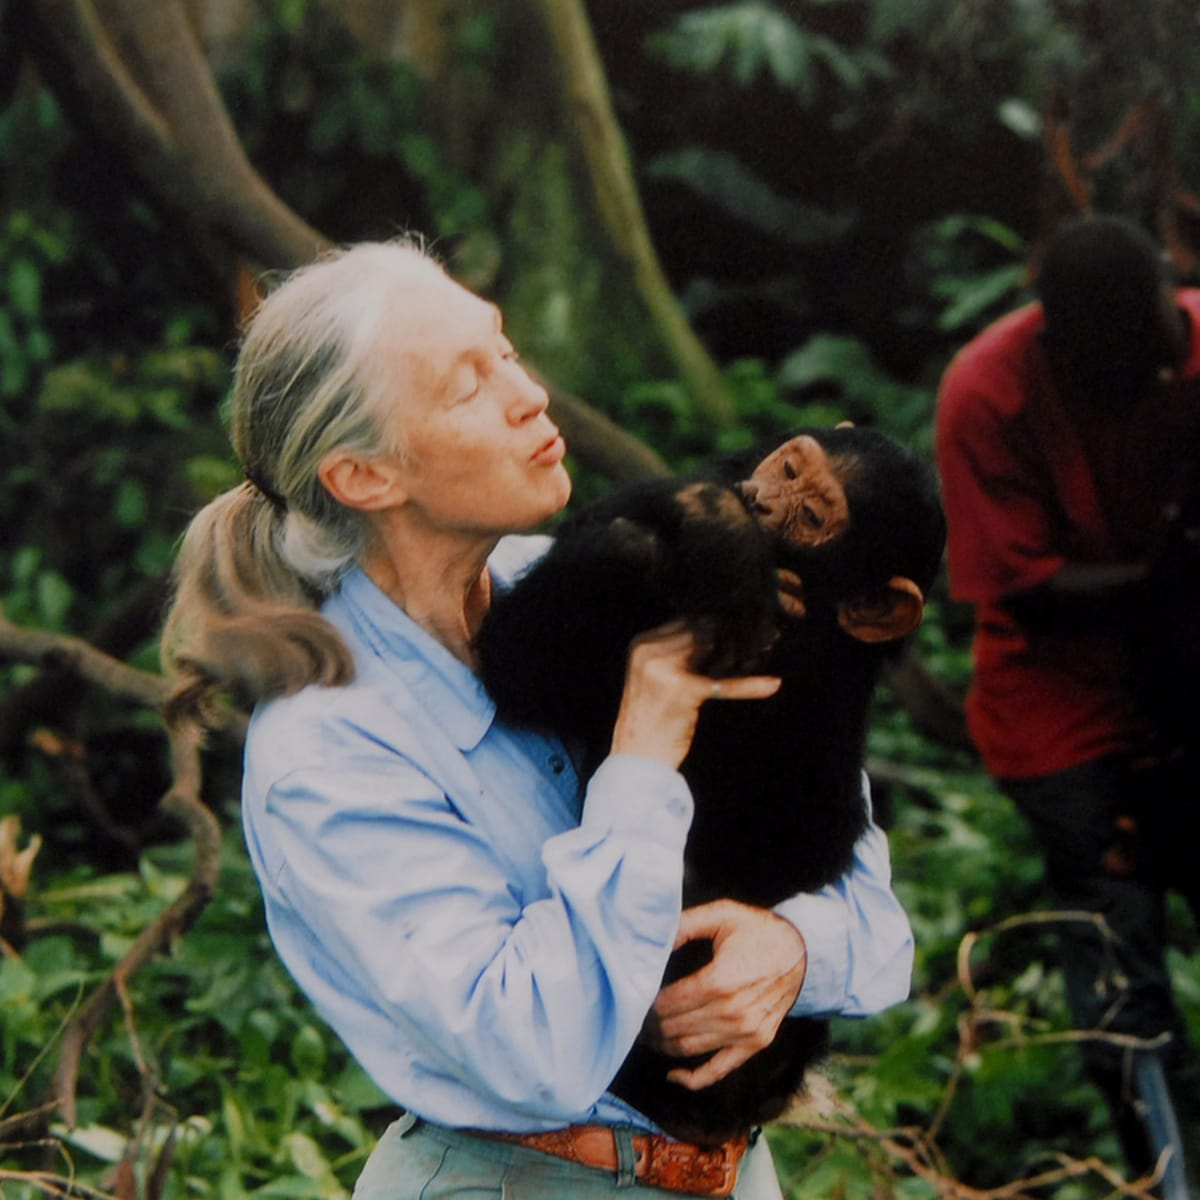 jane-goodall-disney+-luvit-documental-primatologist-ethologist-and-anthropologist-with-a-chimpanzee-in-her-arms-c-1995-photo-by-apic_getty-images